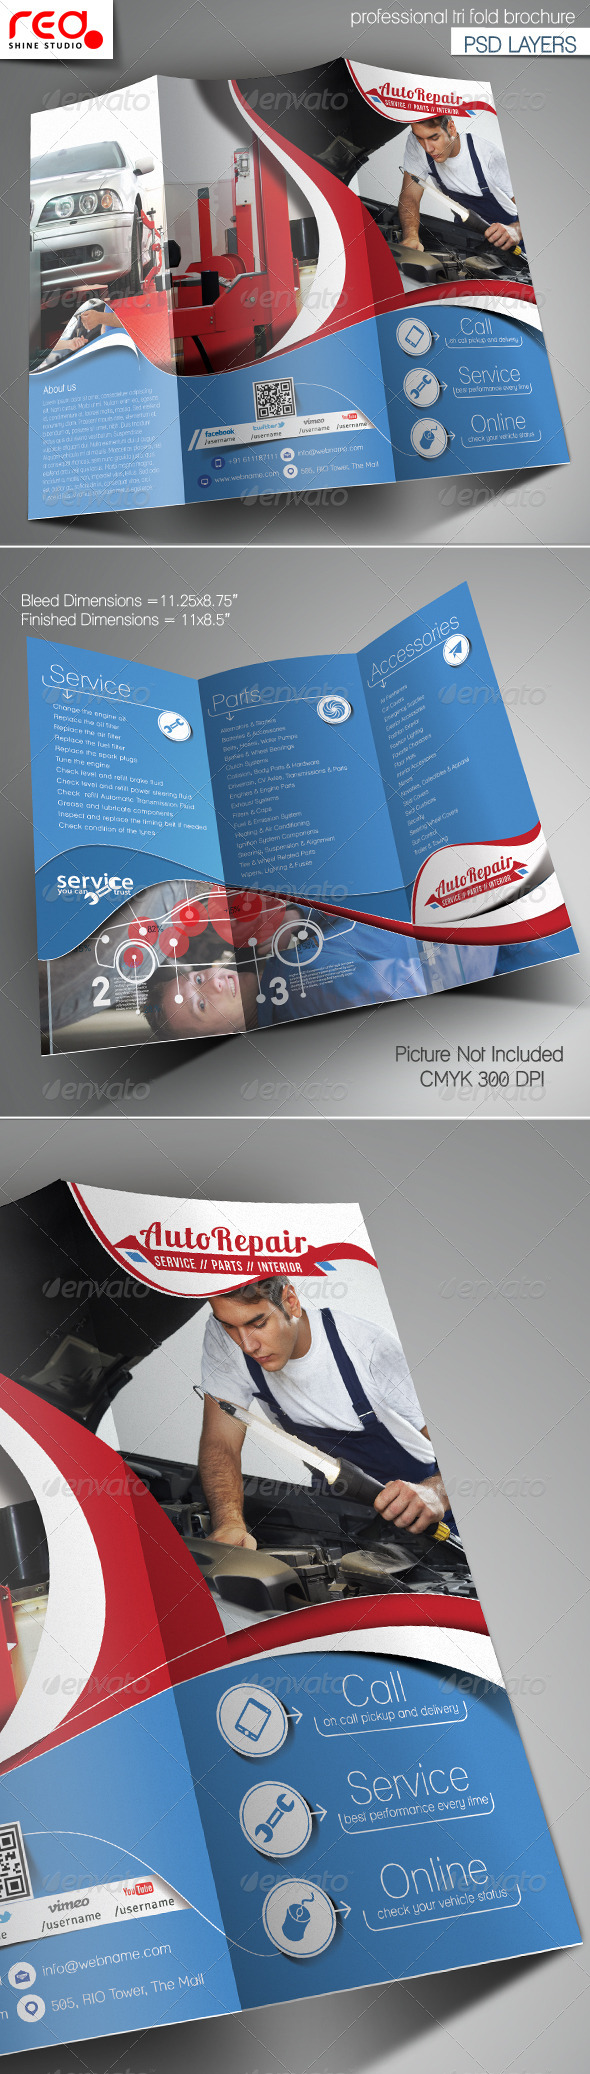 Auto Repair Trifold Brochure Template - Corporate Brochures